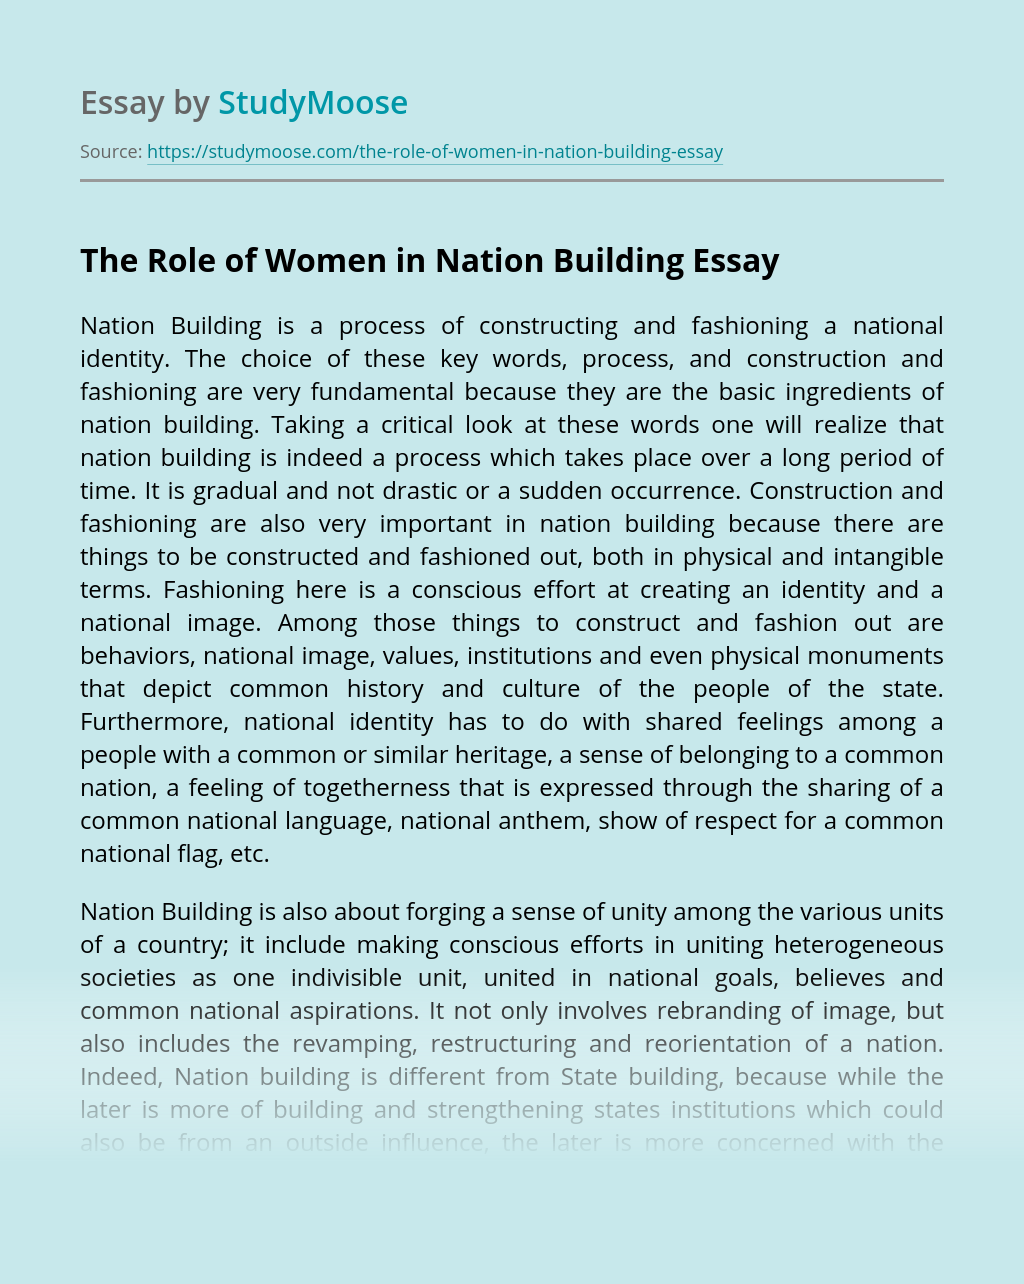 The Role of Women in Nation Building